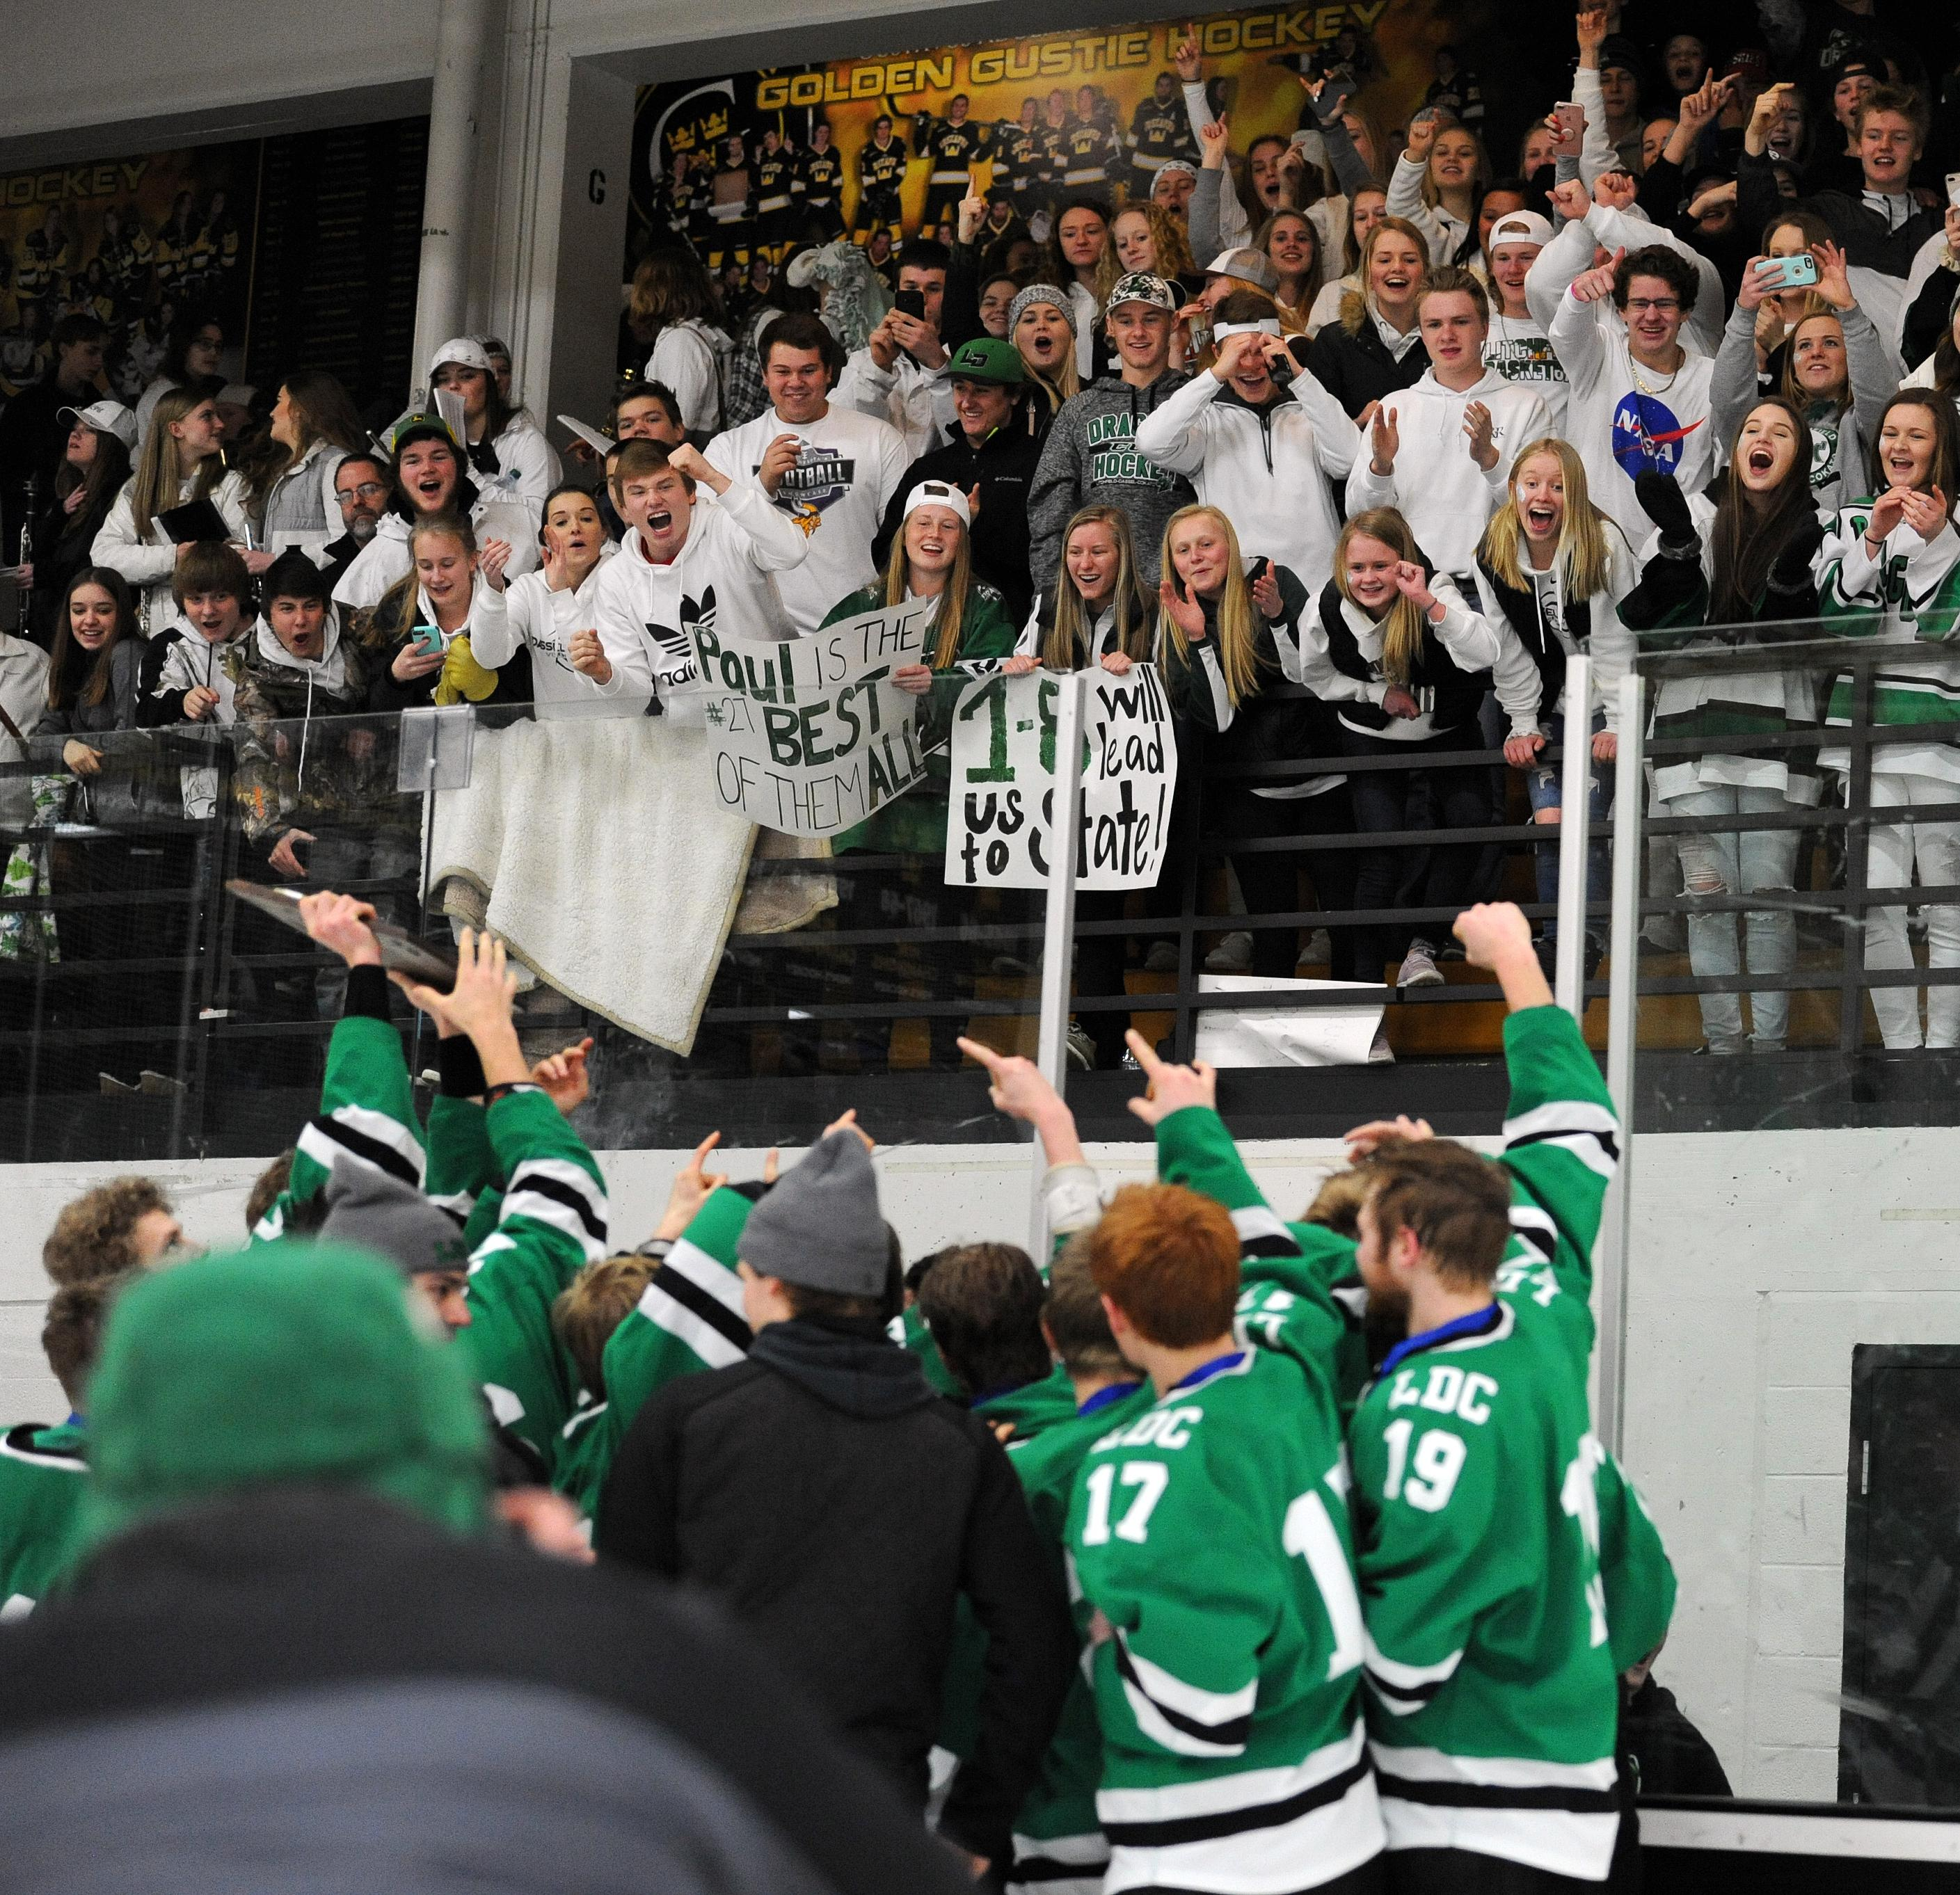 Litchfield/Dassel-Cokato players celebrate their Class 1A, Section 4 championship in front of their cheering section on Wednesday after a 4-1 victory over Luverne. Photo by Loren Nelson, legacyhockeyphotography.net